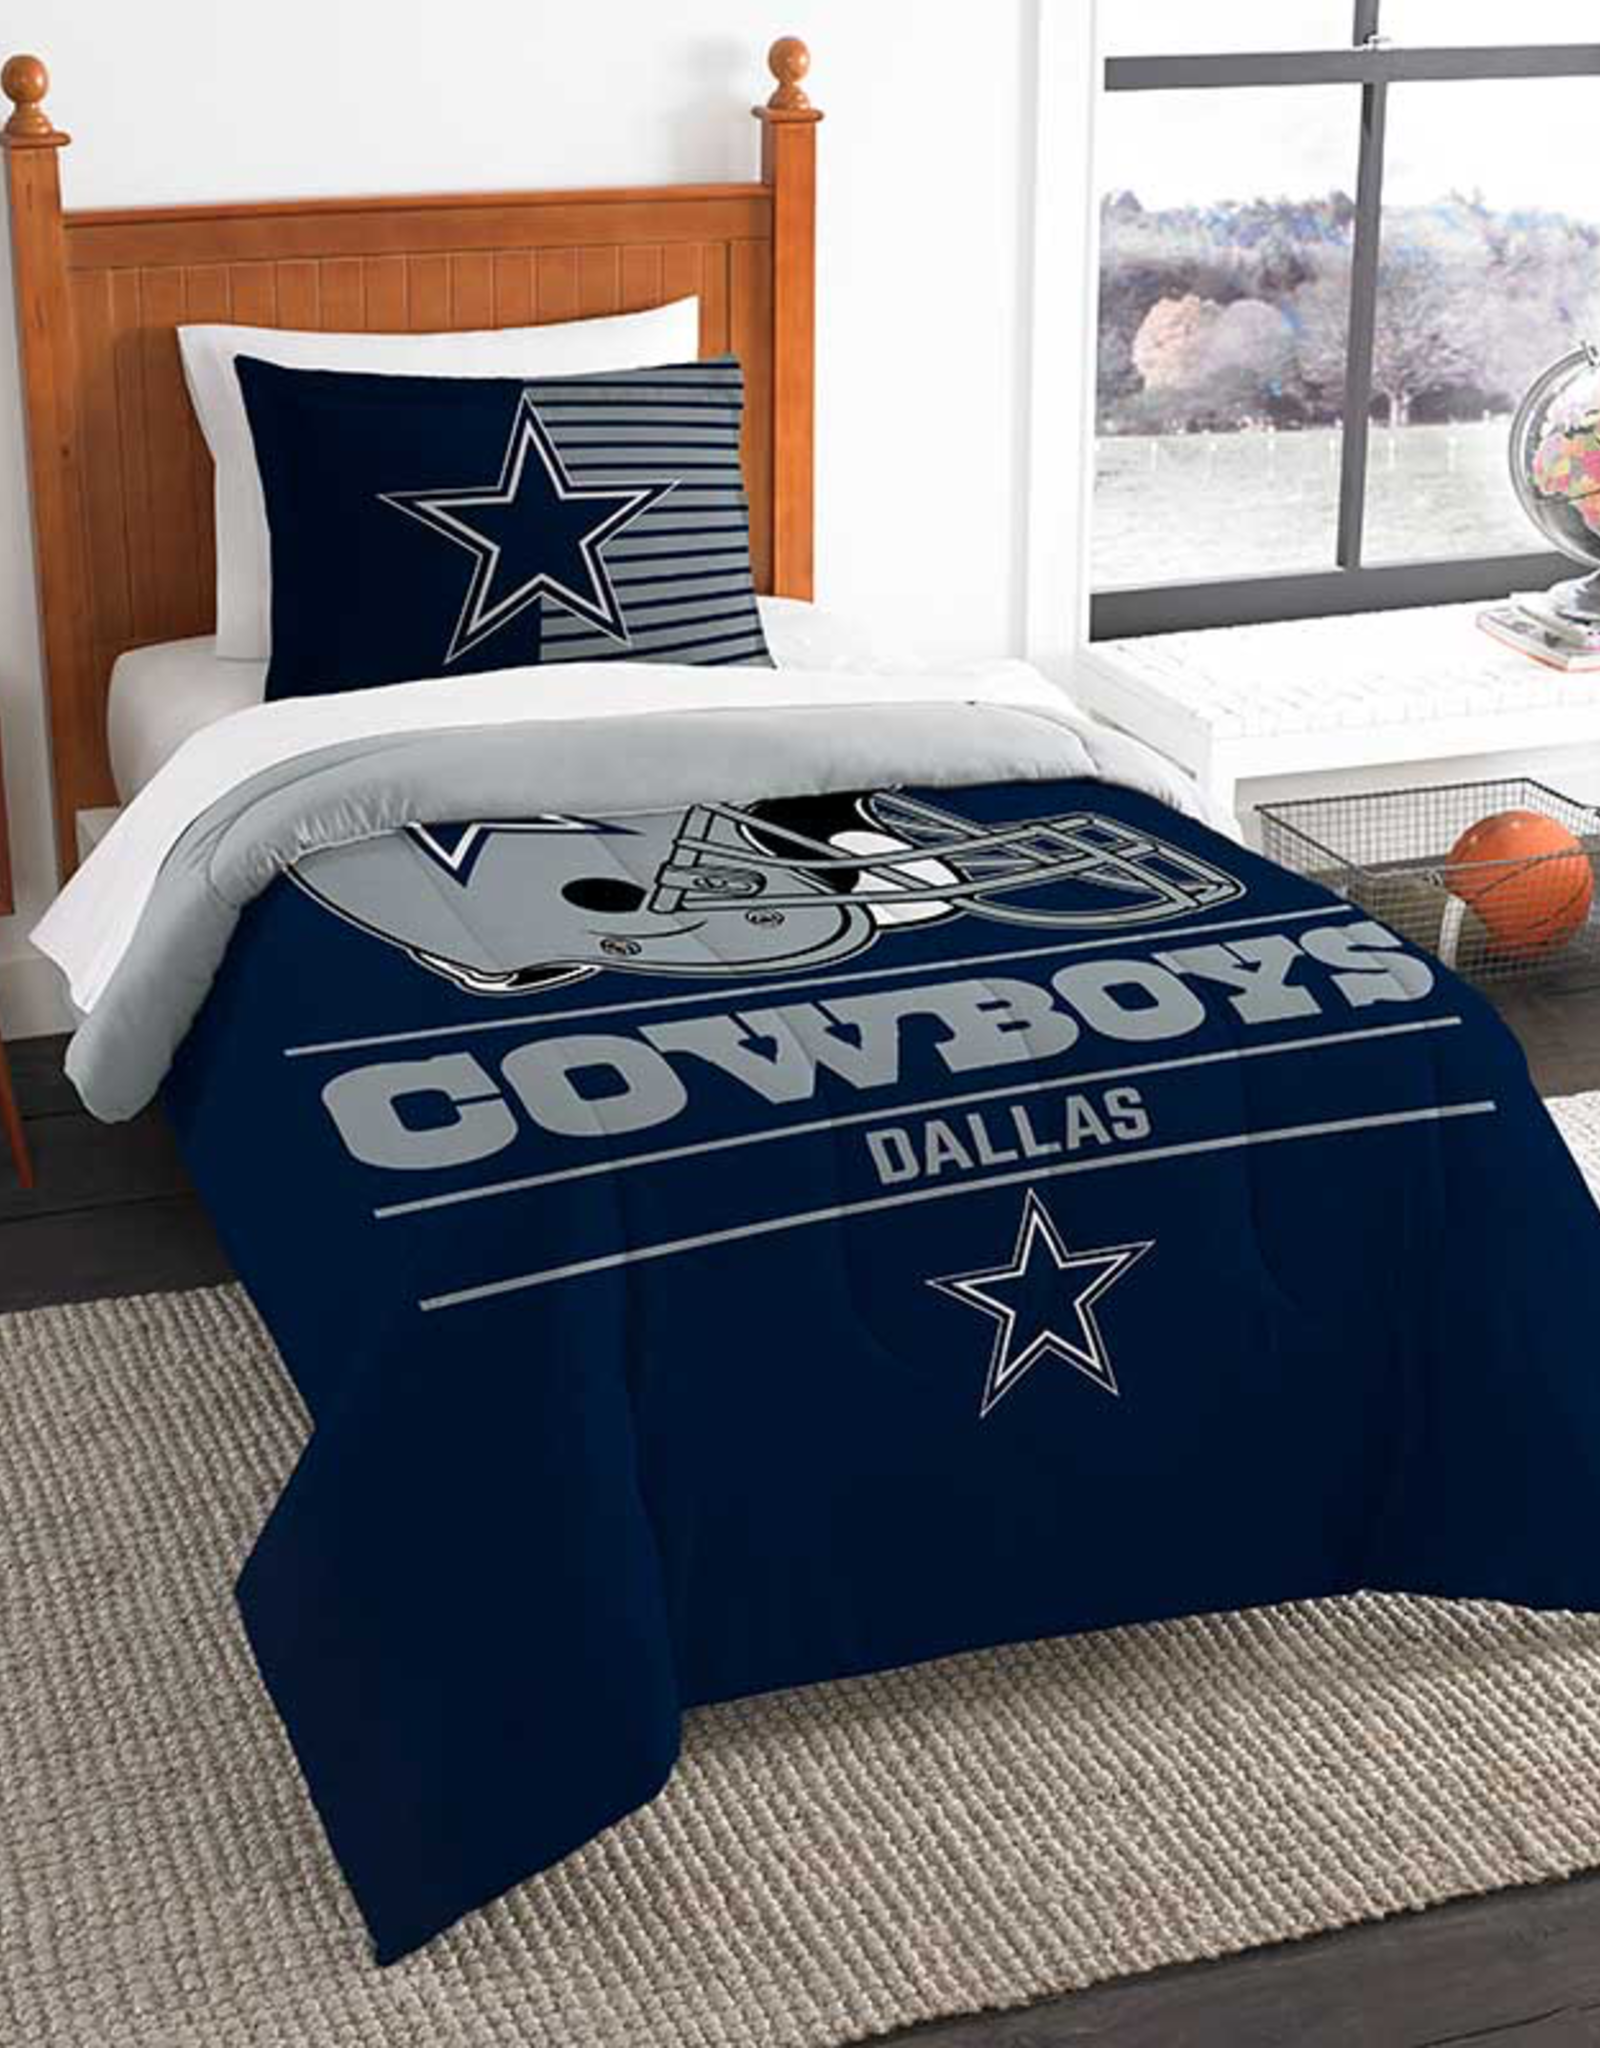 NORTHWEST Dallas Cowboys Draft Twin Comforter Set